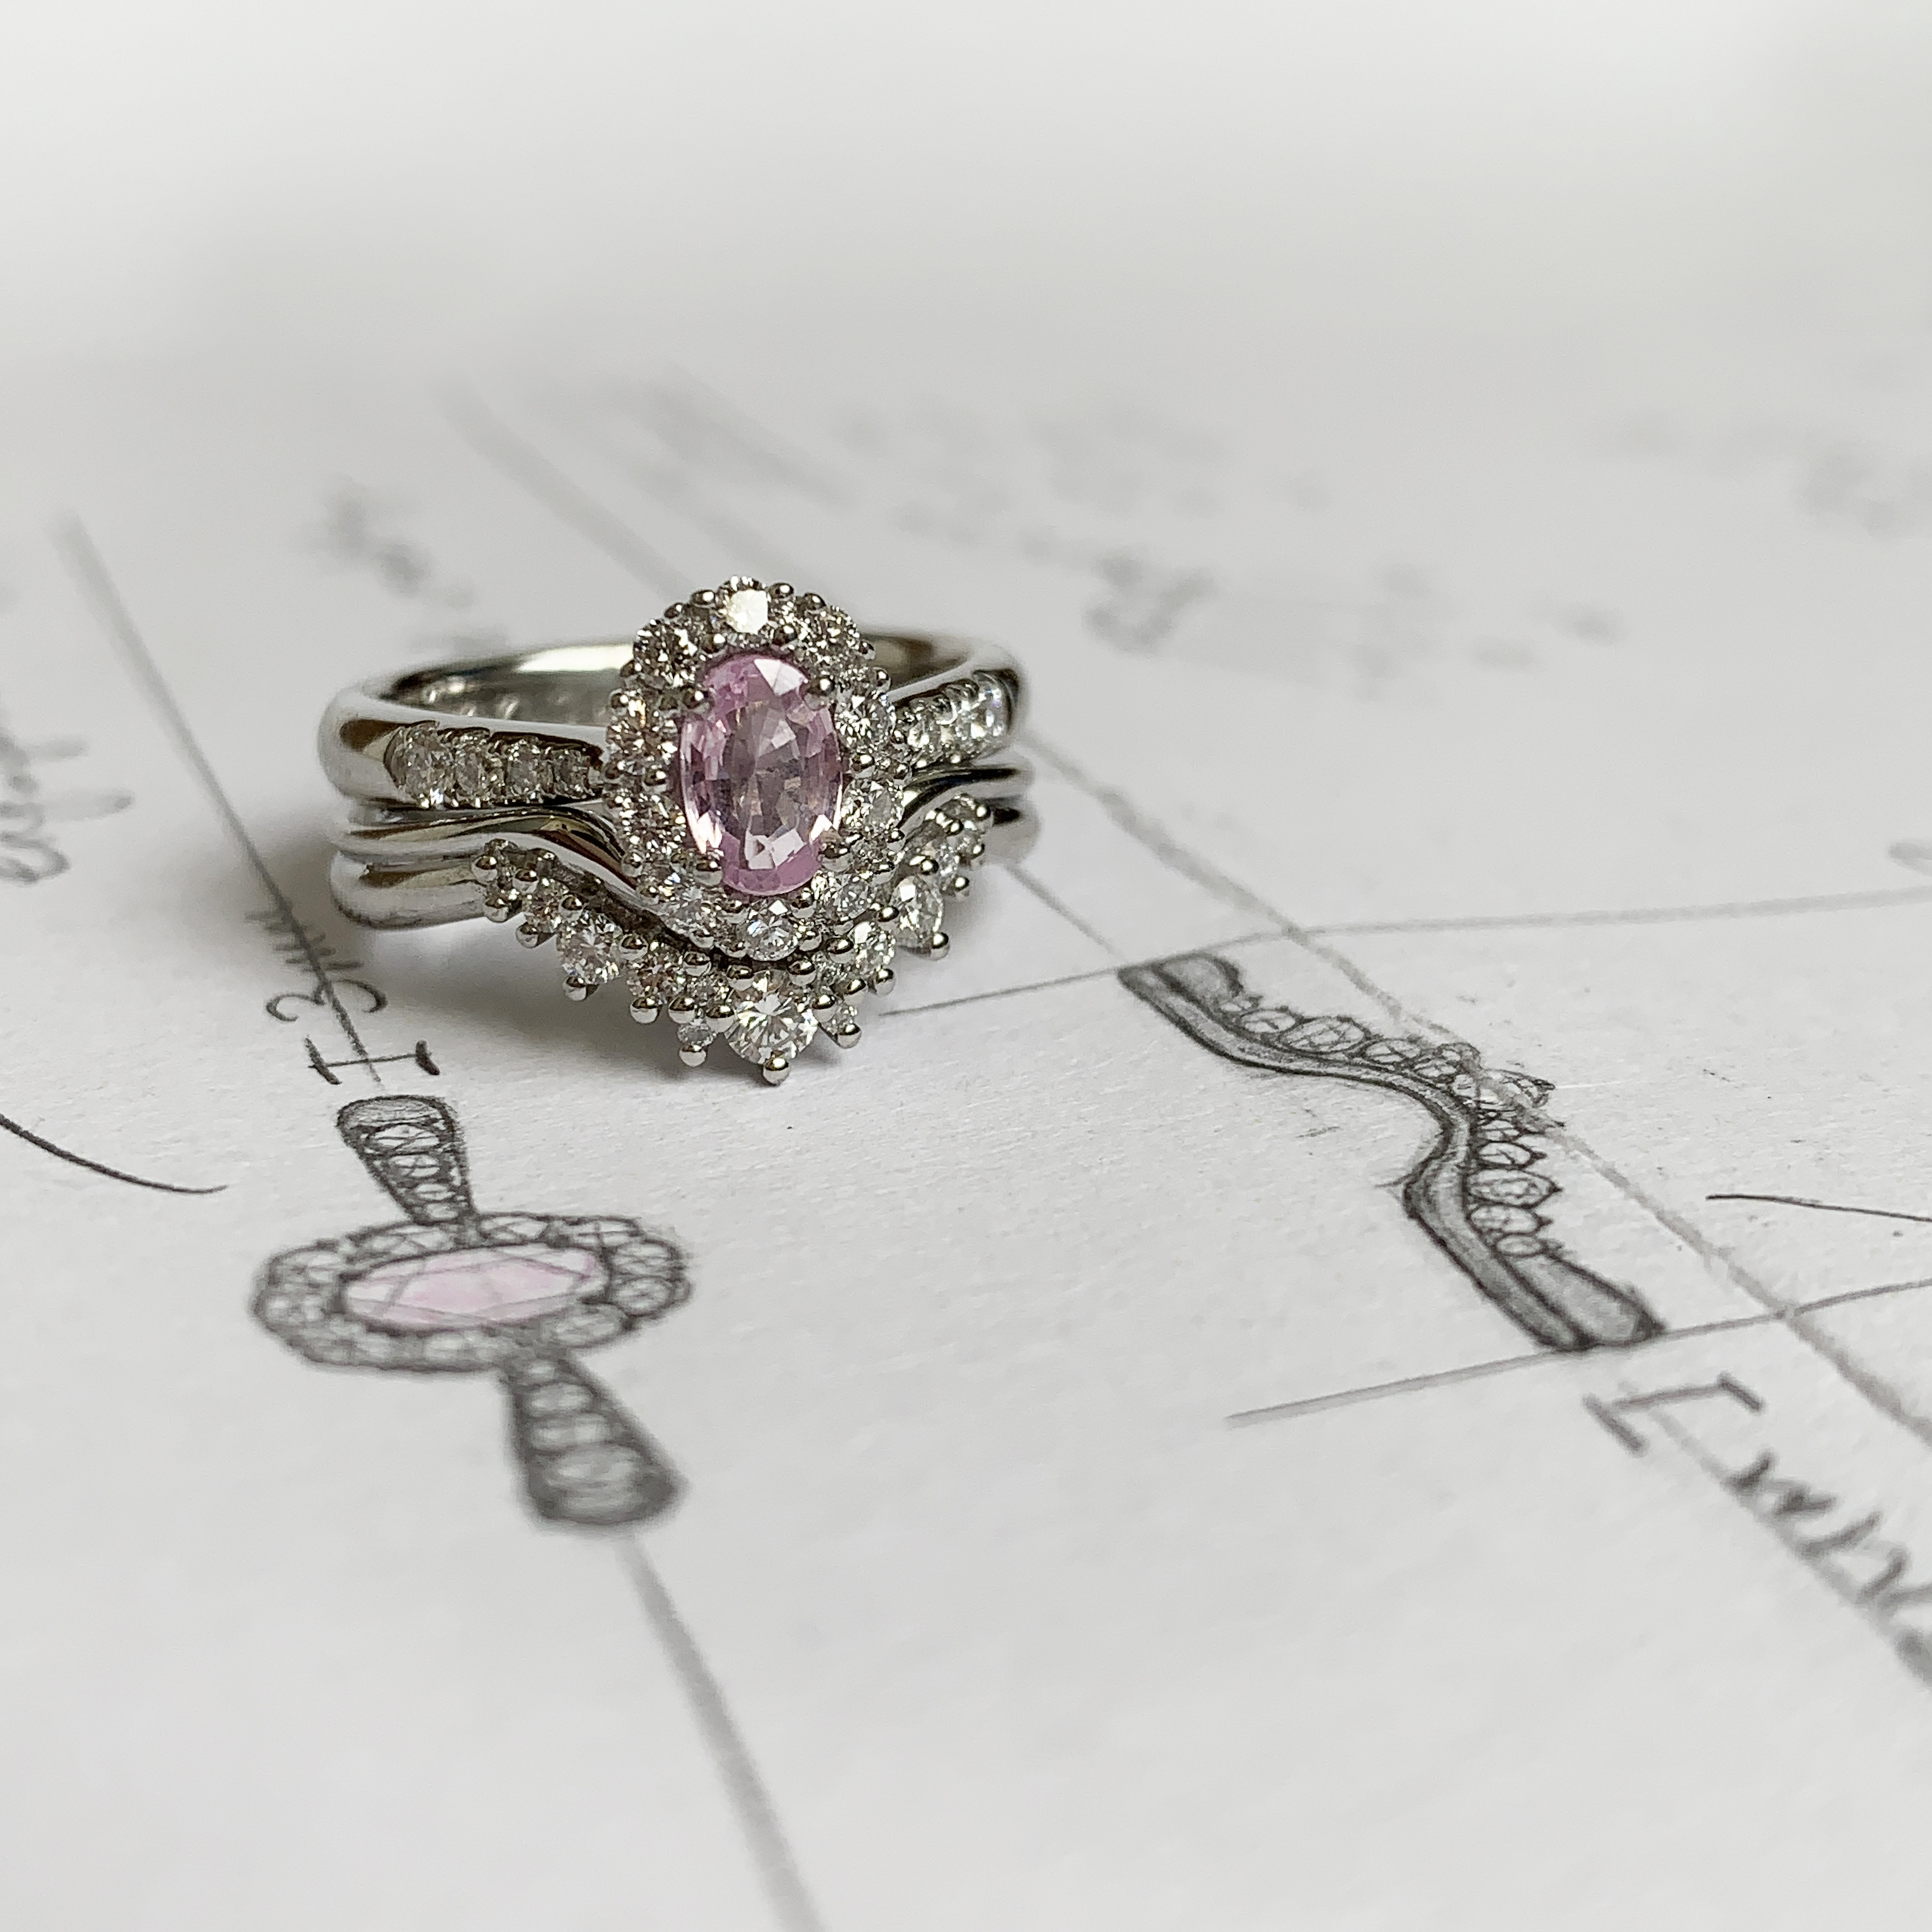 Wylde engagement and wedding ring next to sketched design